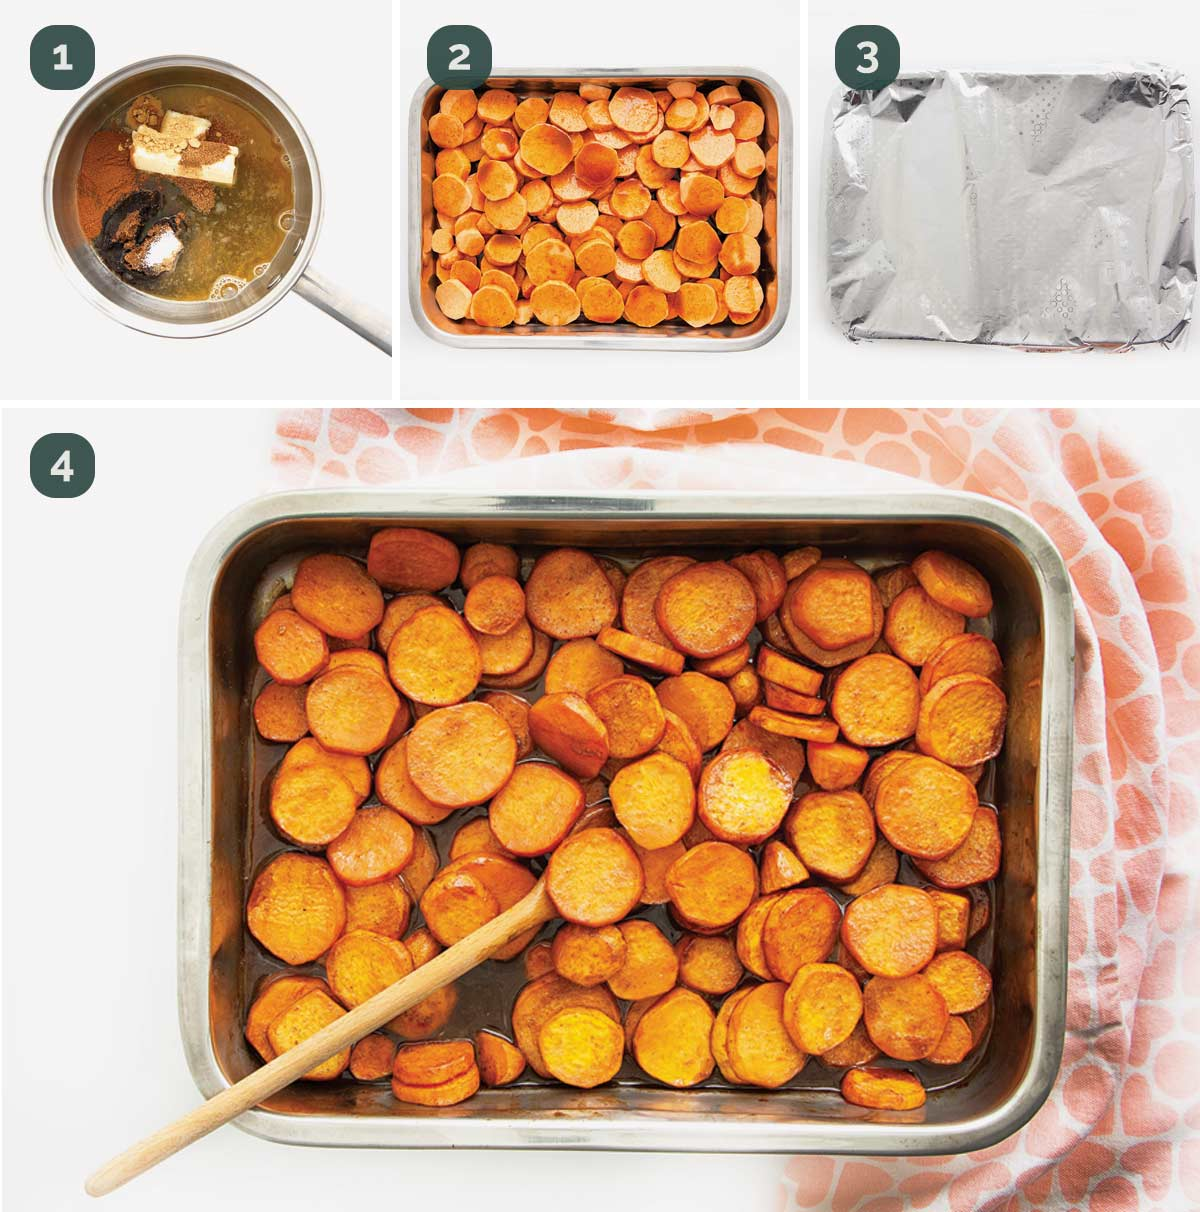 process shots showing how to make candied yams.